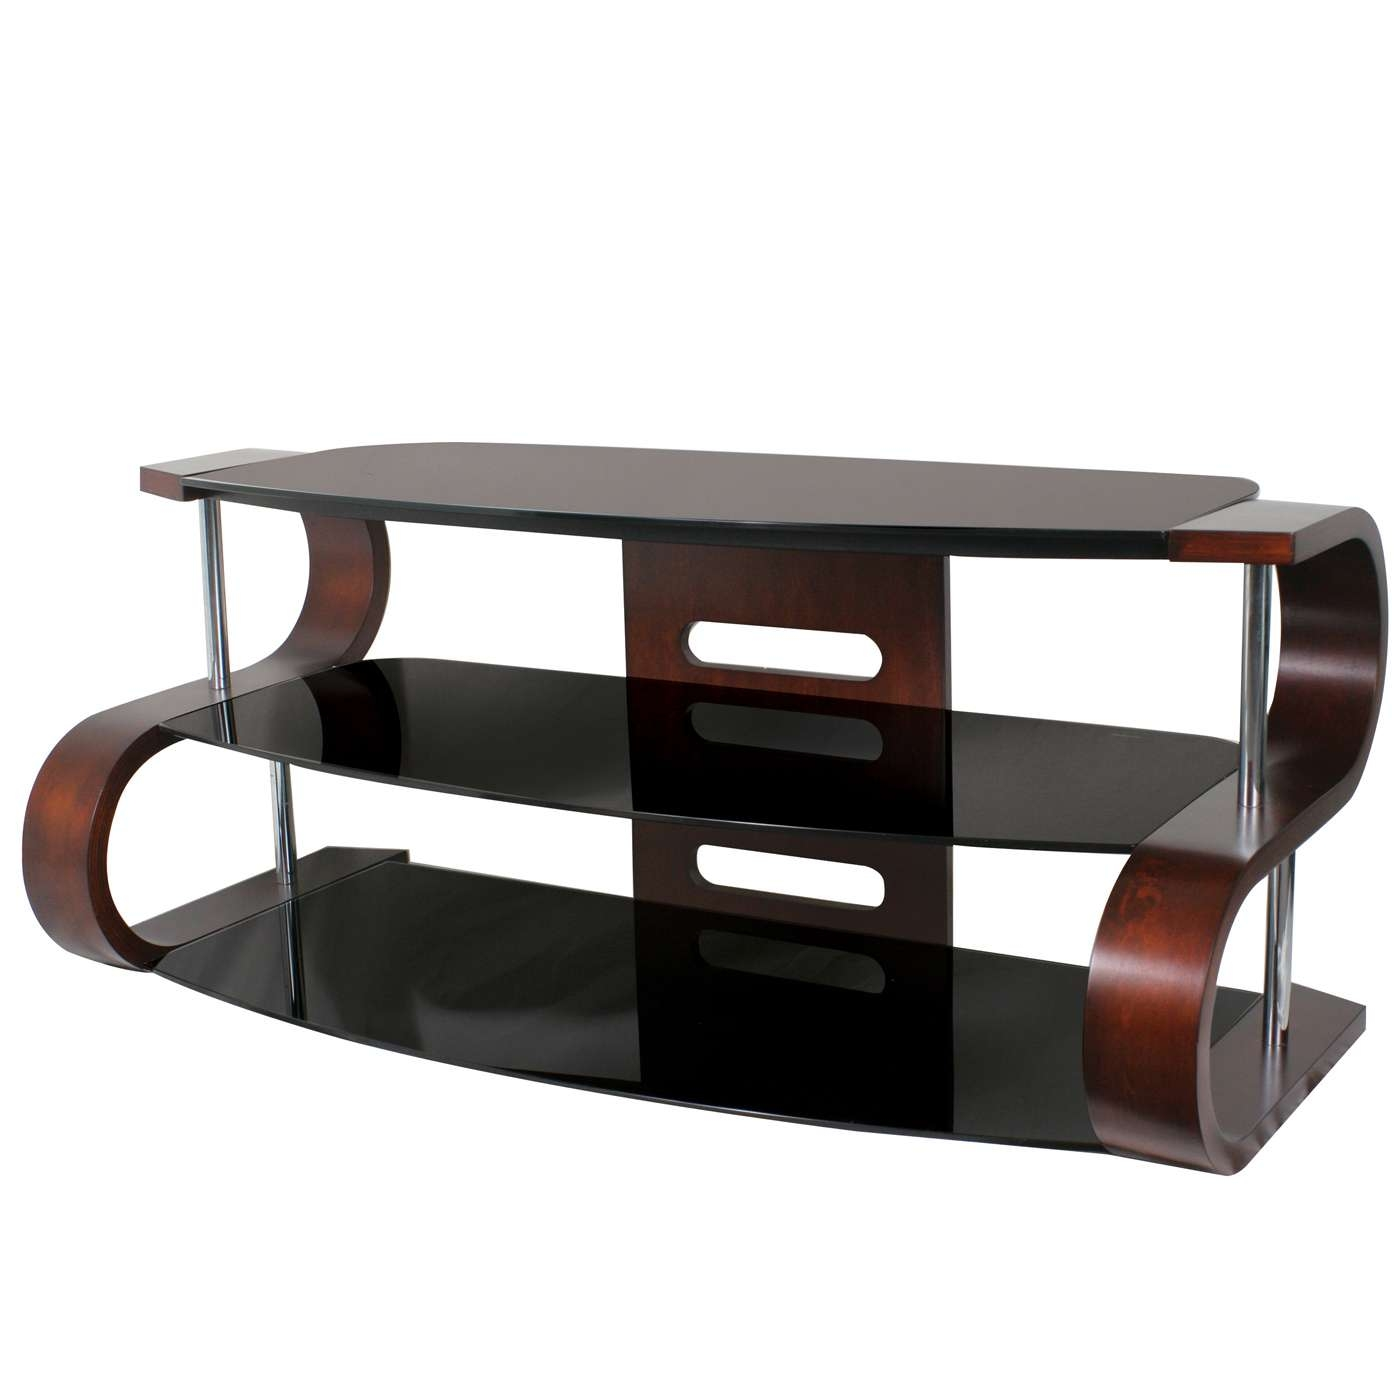 Tv Stand : Dark Wood Tv Stand Stands Rustic Farmhouse Standdark With Dark Wood Tv Cabinets (View 13 of 20)